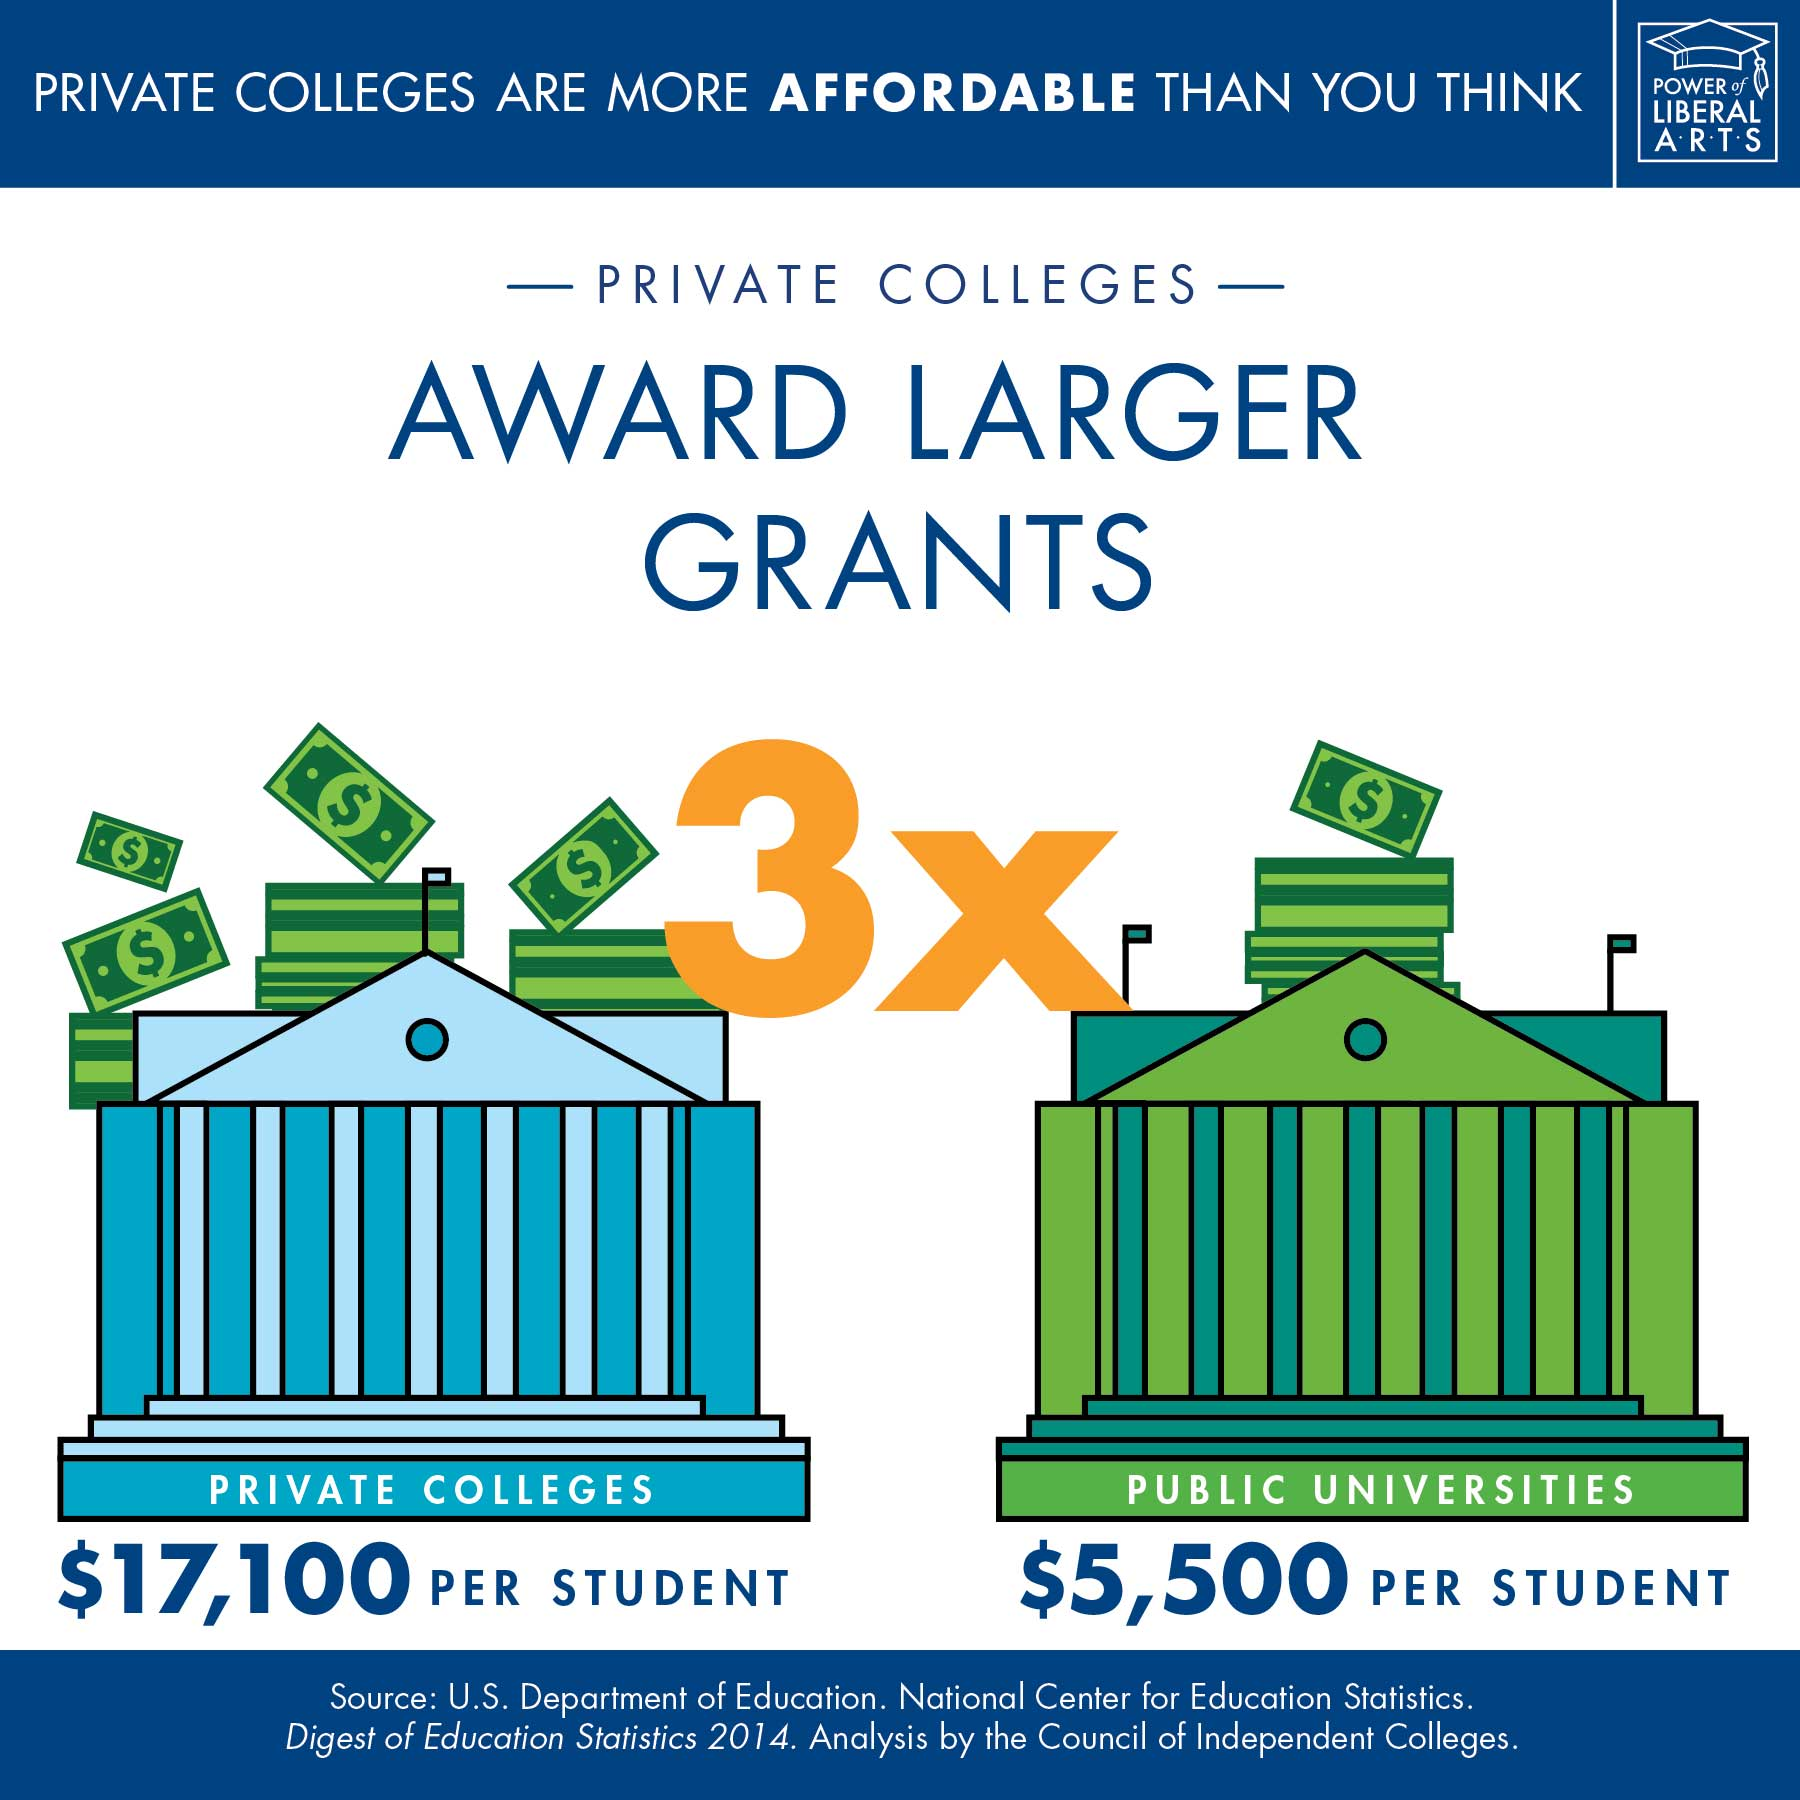 Infographic: Private colleges award larger grants